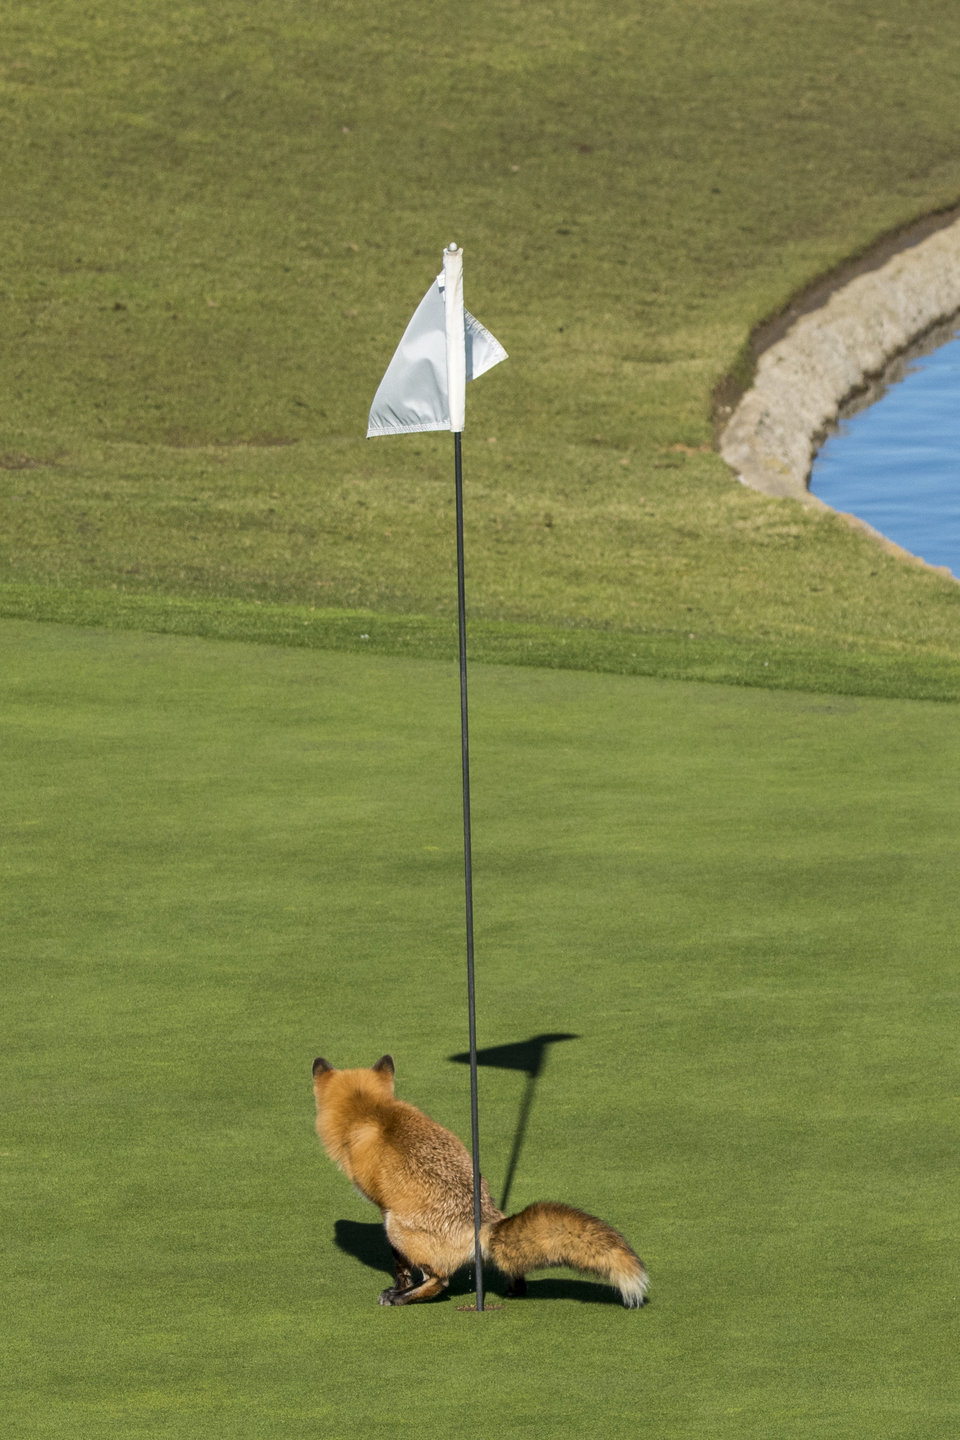 """""""Must Have Three-putted"""" by Douglas Croft"""